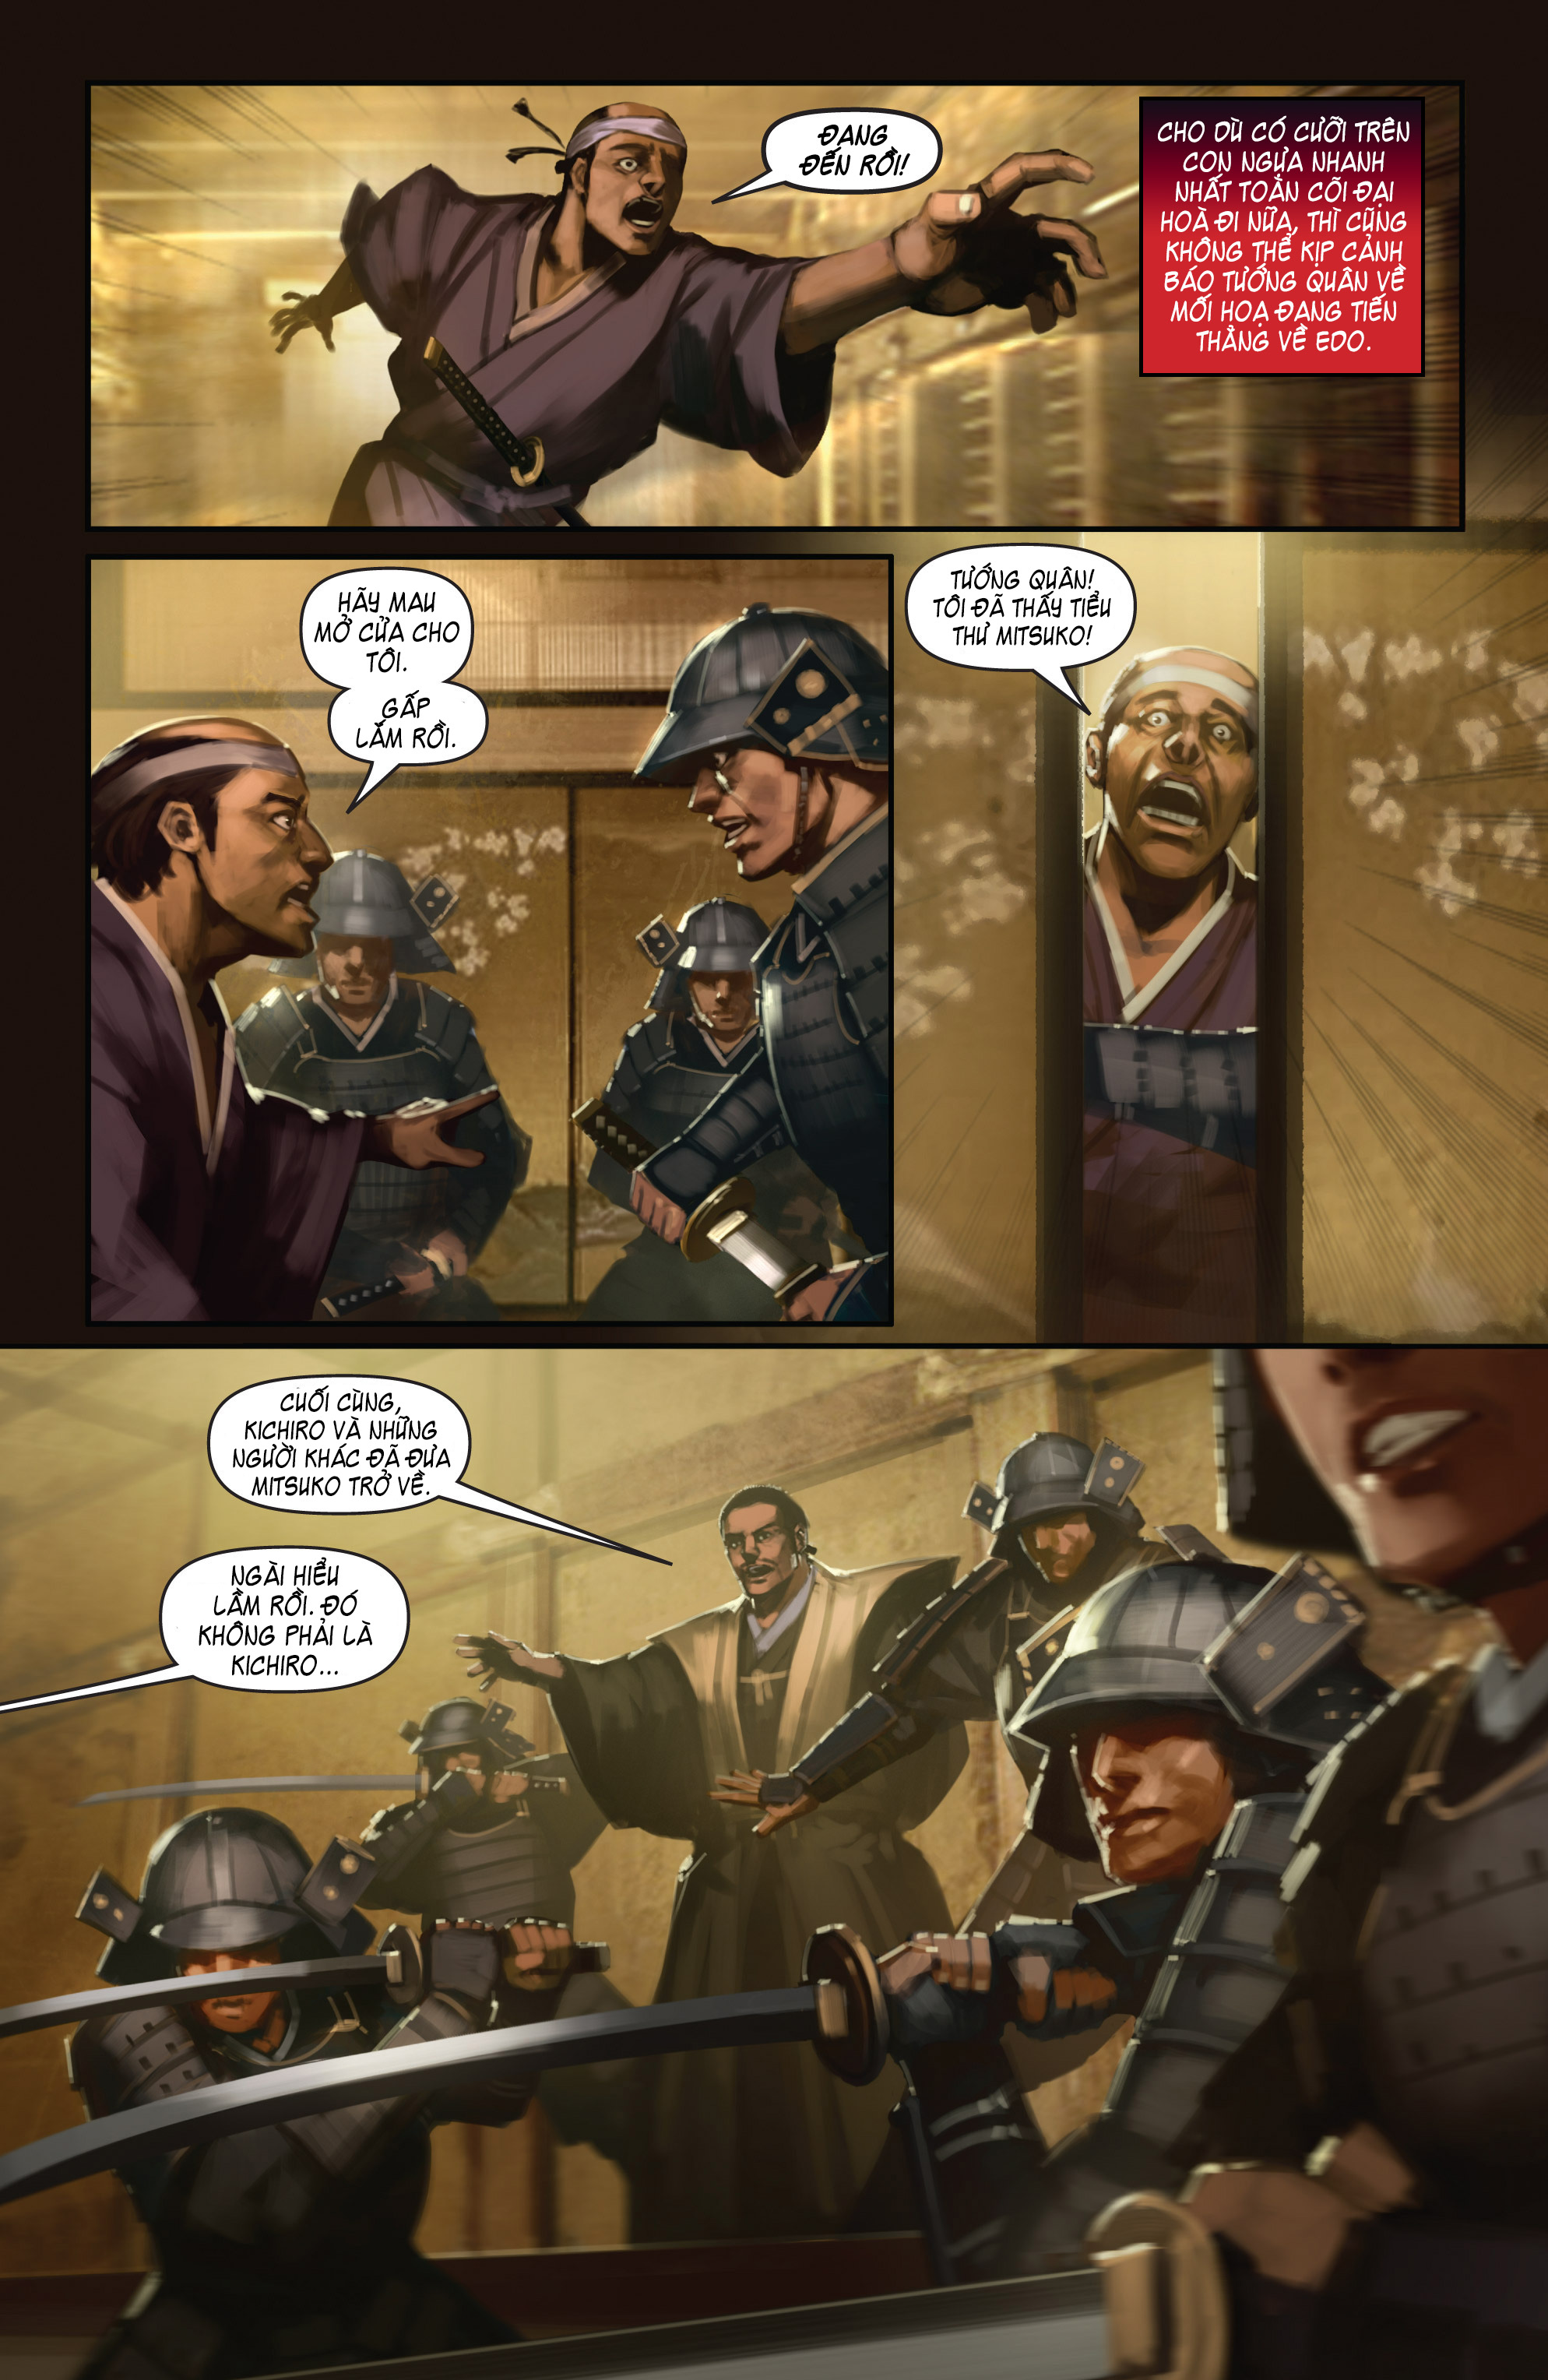 BUSHIDO - THE WAY OF THE WARRIOR chapter 5 - end trang 5